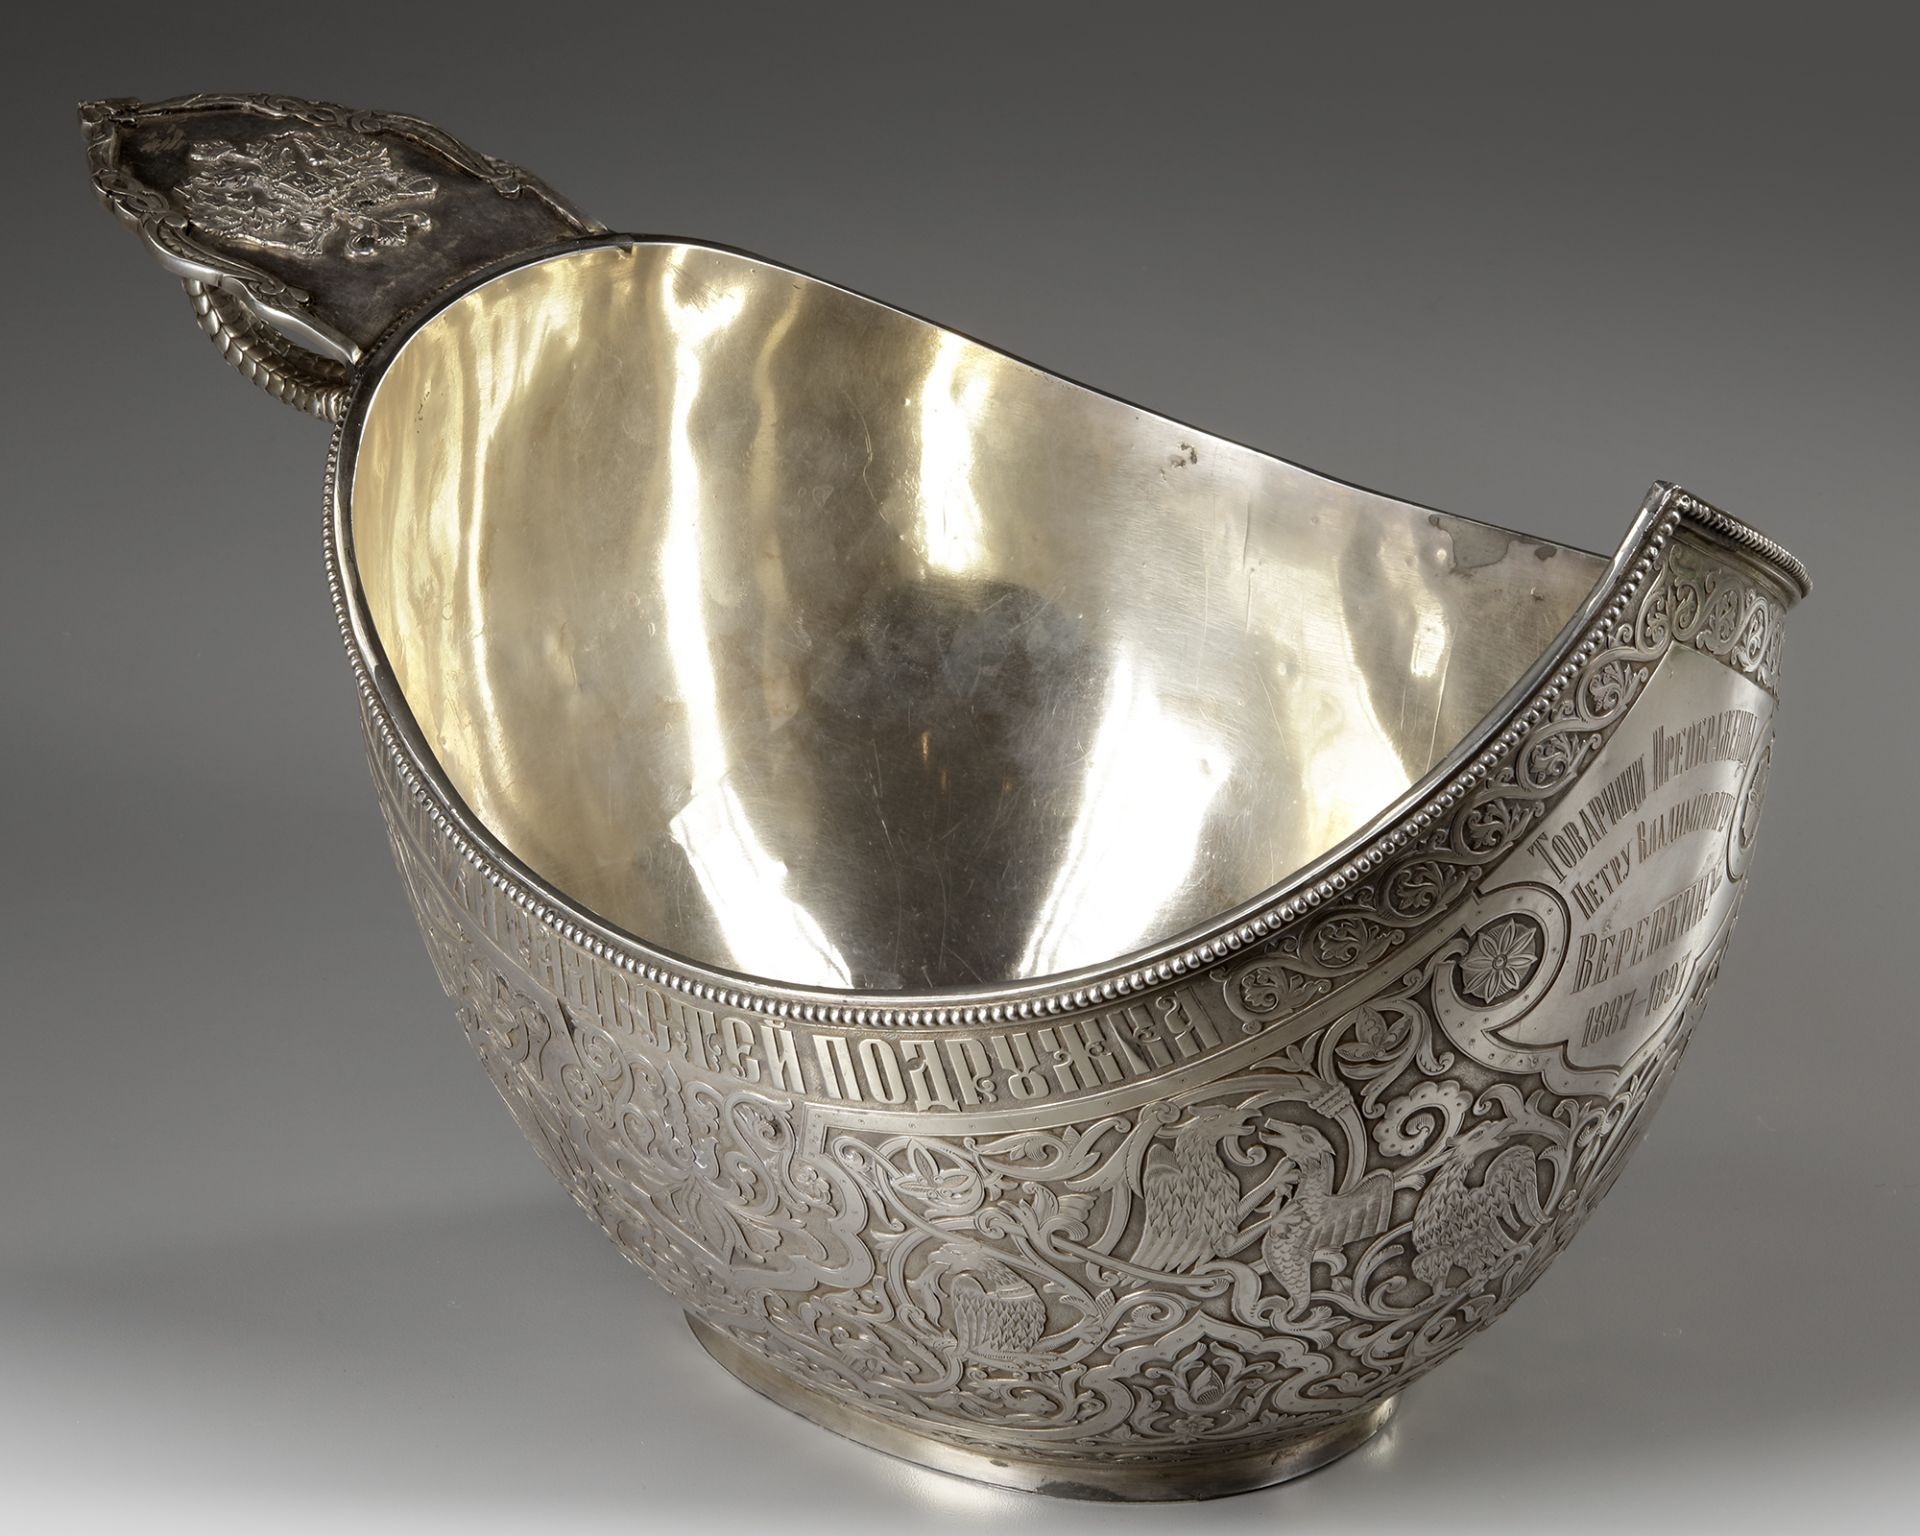 A LARGE RUSSIAN IMPERIAL SILVER KOVSCH BOWL, LATE 19TH CENTURY - Image 6 of 8